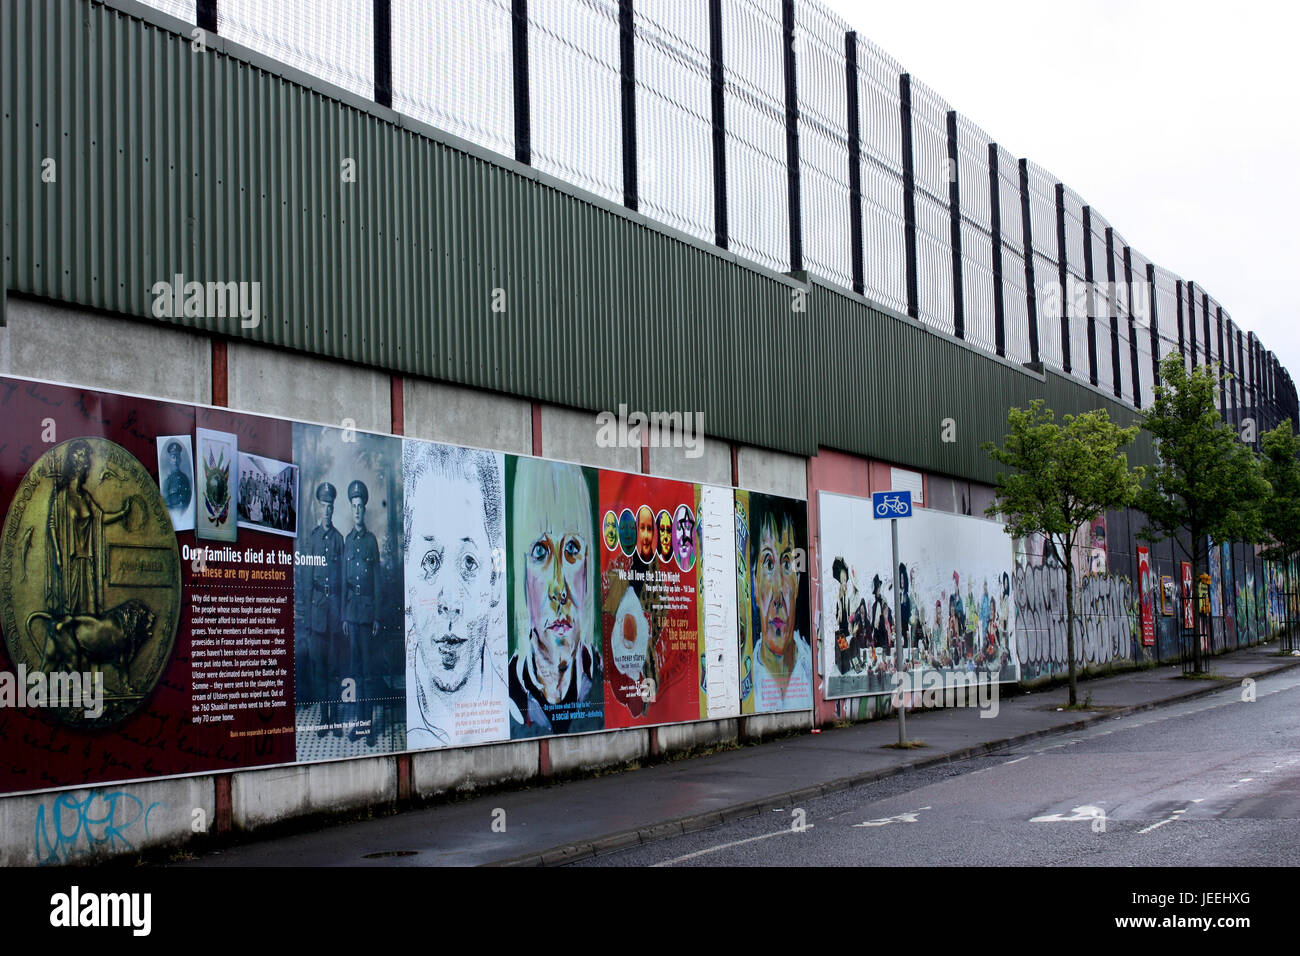 The Peace Wall, Cupar Way, Belfast Stock Photo: 146609528 - Alamy